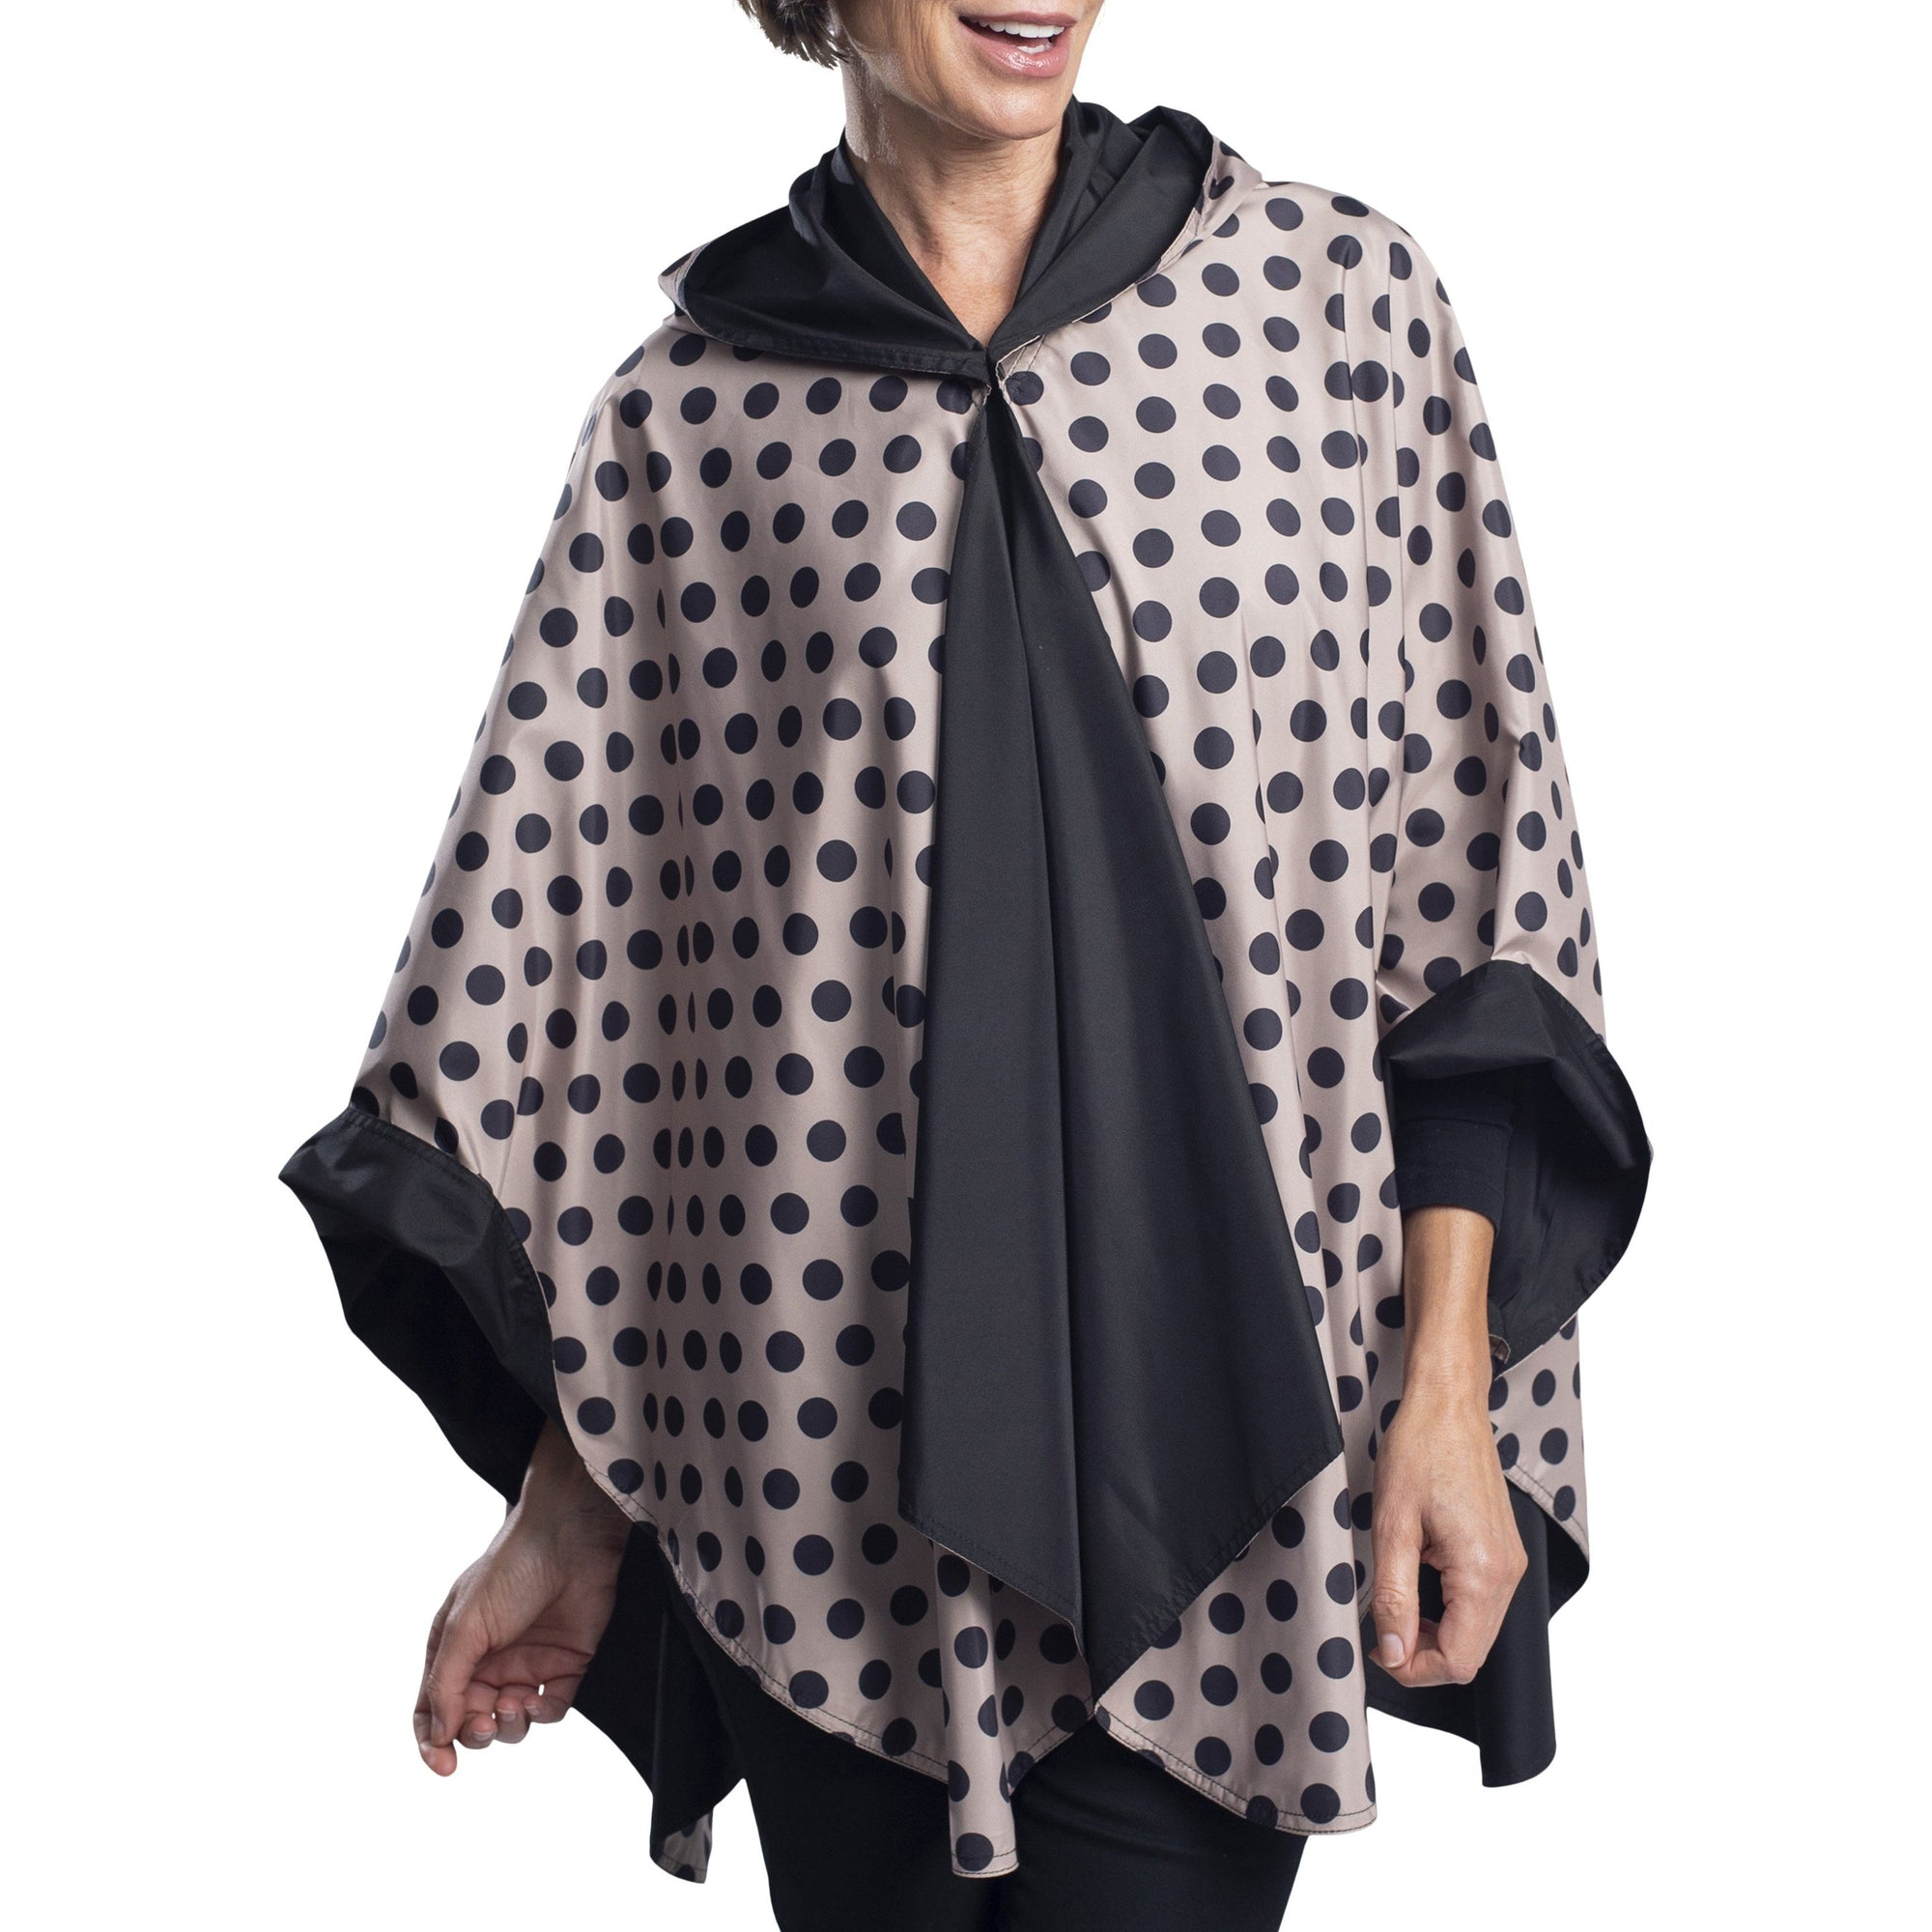 Women wearing a Black and Camel Dots Reversible RainCaper travel cape with the Black side out, revealing the Camel Dots Reversible print at the lapels and cuffs